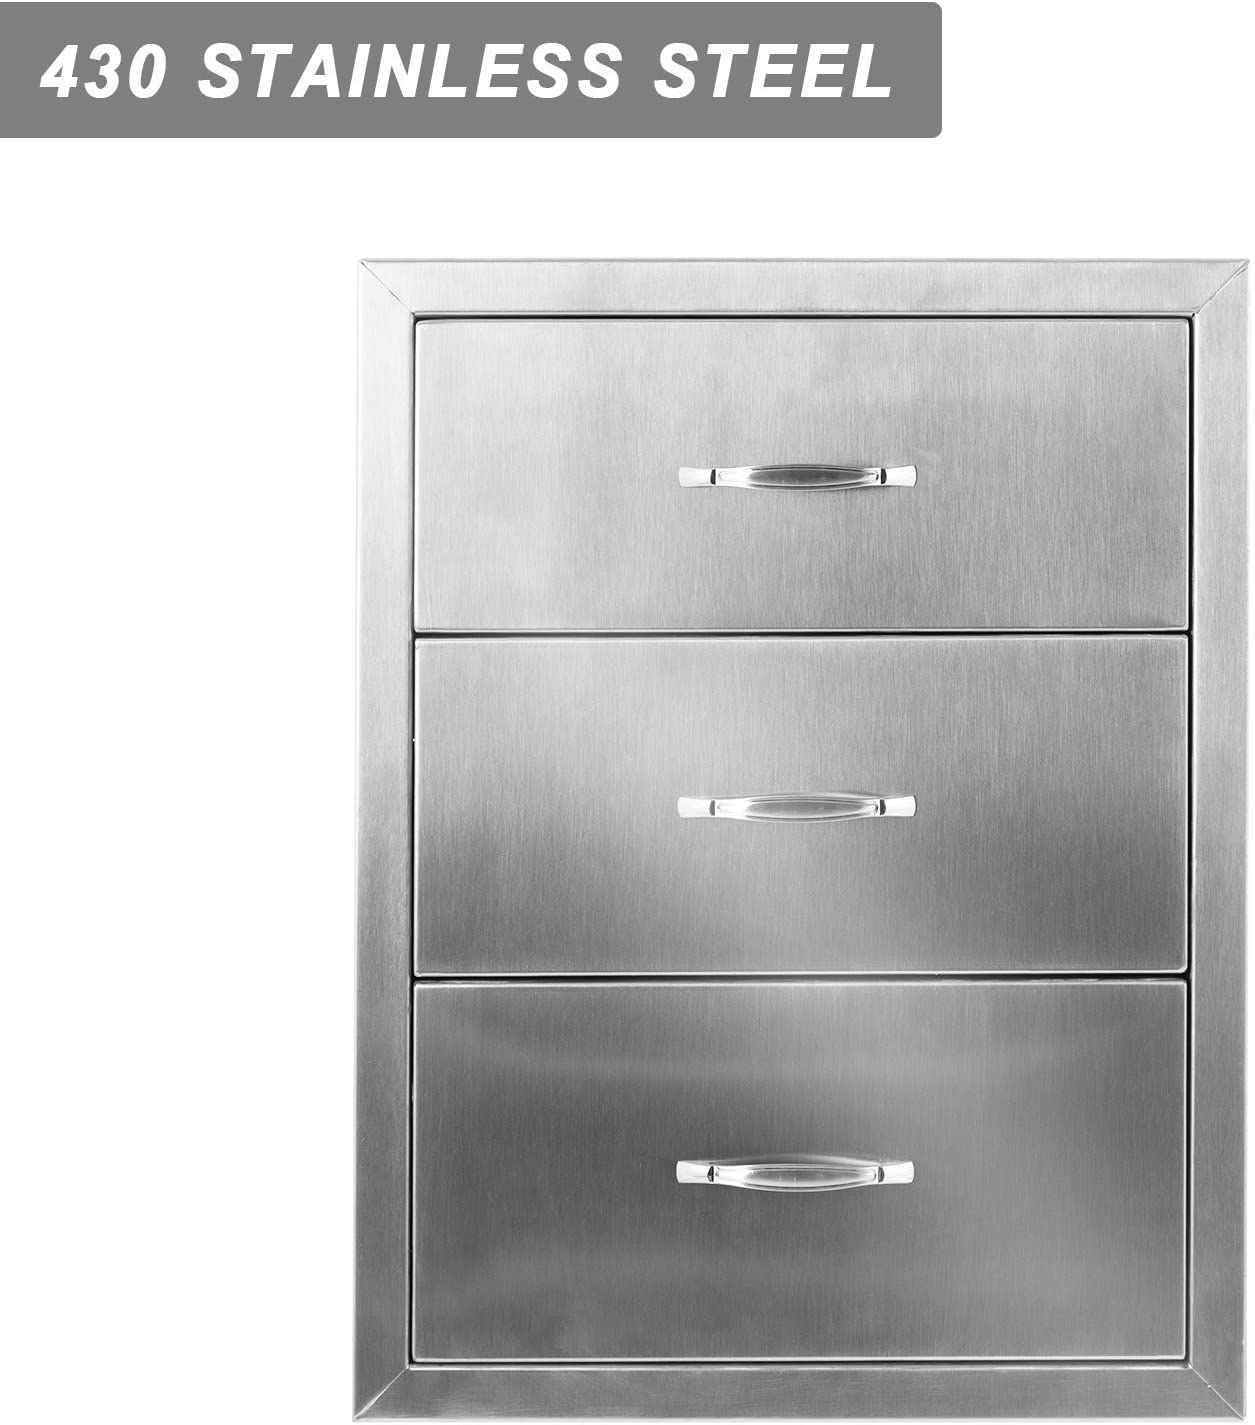 with Stainless Steel Handle BBQ Drawers for Outdoor Kitchens or BBQ Island Flush Mount Triple Drawers,18W x 20.5H x 20.7D Inch Mophorn 18x20.5 Inch Outdoor Kitchen Drawers Stainless Steel